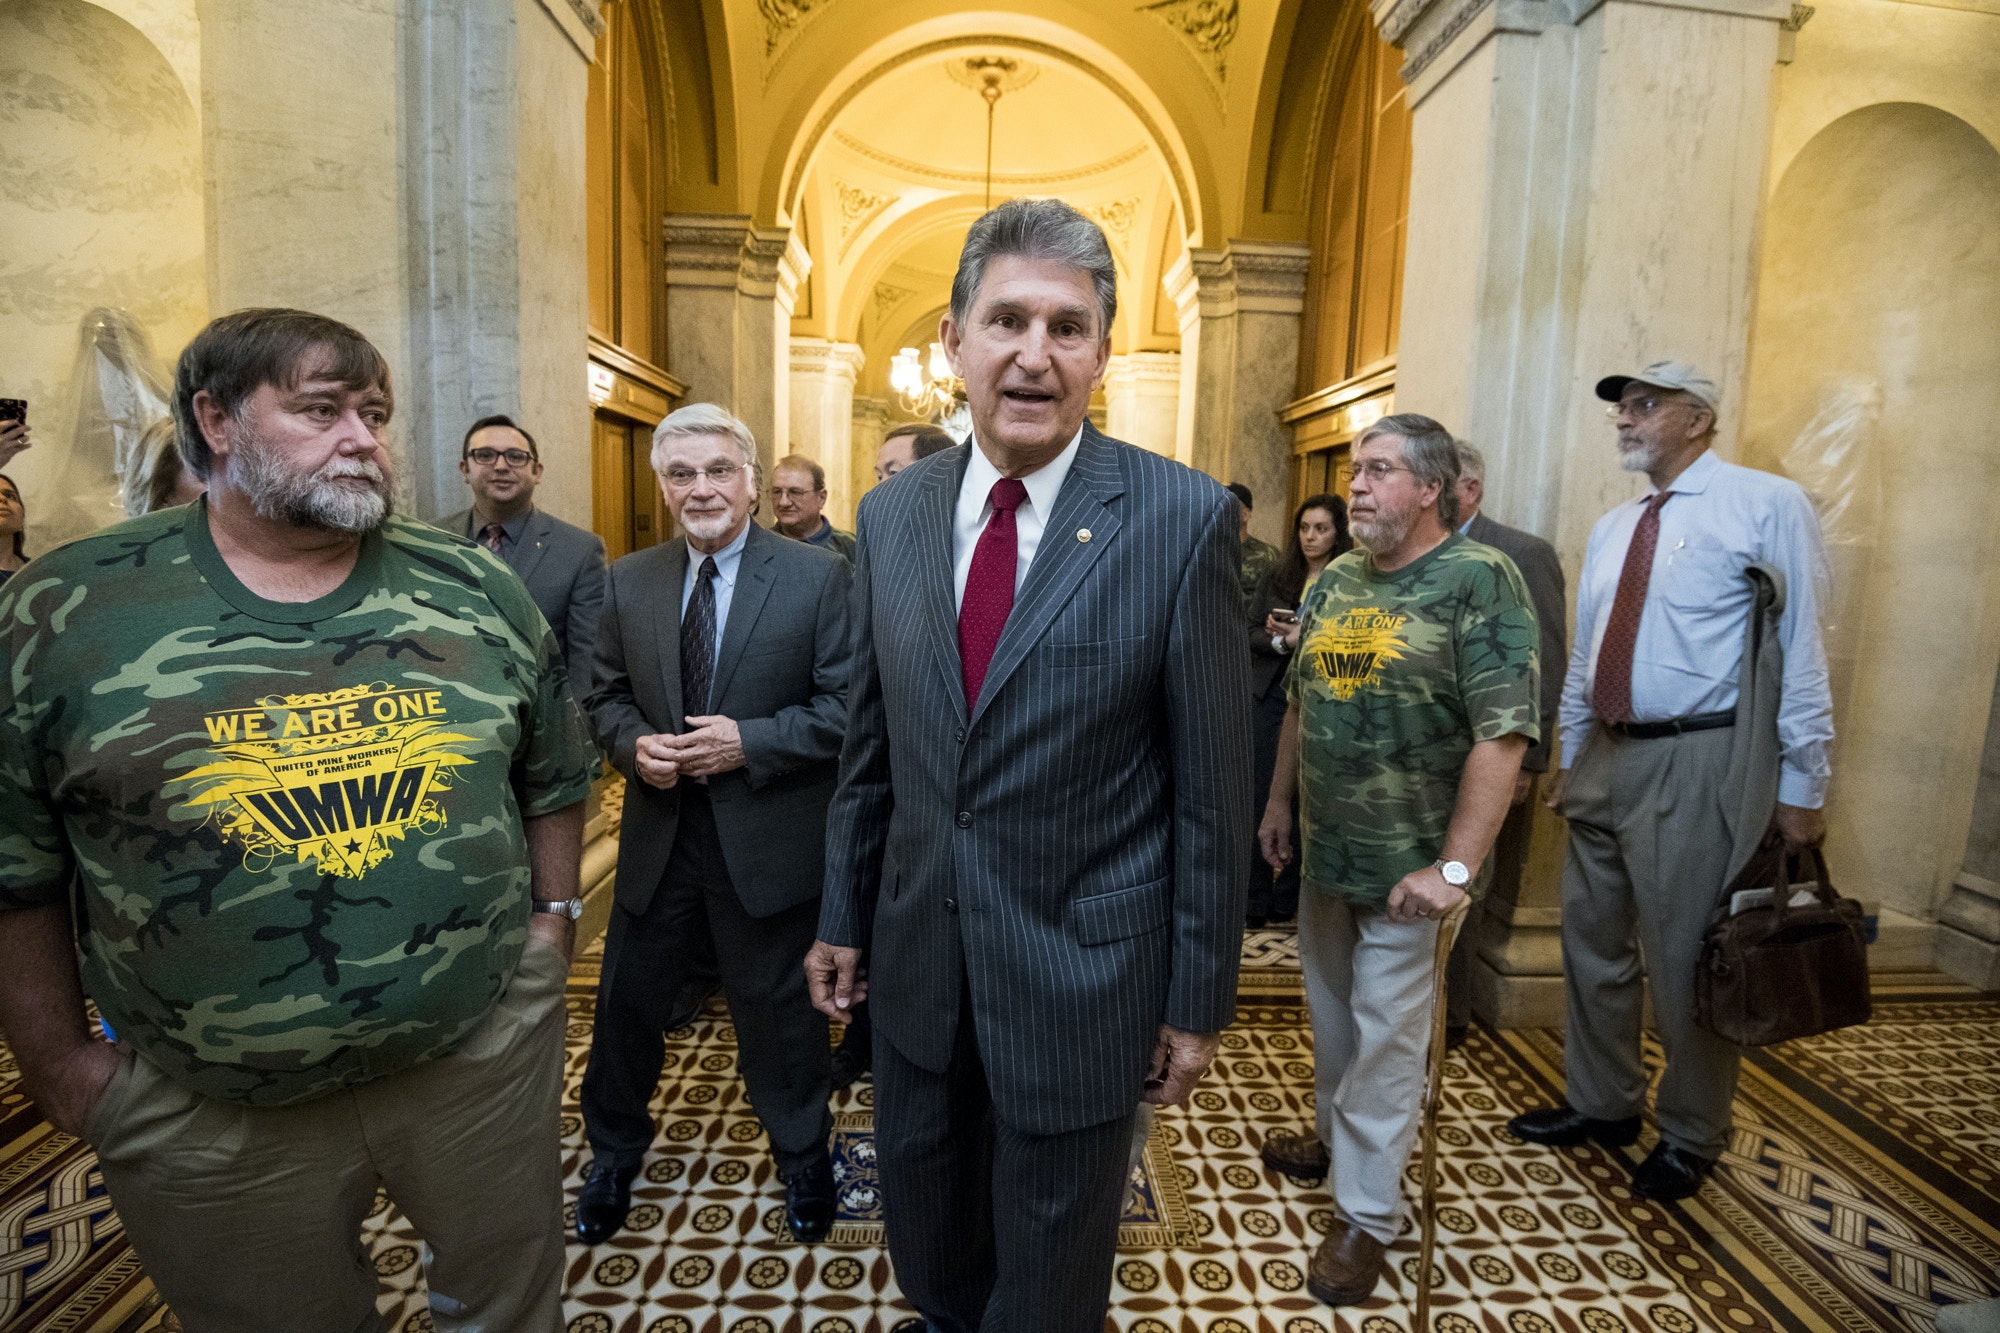 UNITED STATES - OCTOBER 3: Sen. Joe Manchin, D-W. Va.,  and United Mine Workers of America President Cecil Roberts arrive to hold a press conference on the introduction of the American Miners Pension Act (AMP Act) in the Capitol on Tuesday, Oct. 3, 2017. (Photo By Bill Clark/CQ Roll Call)